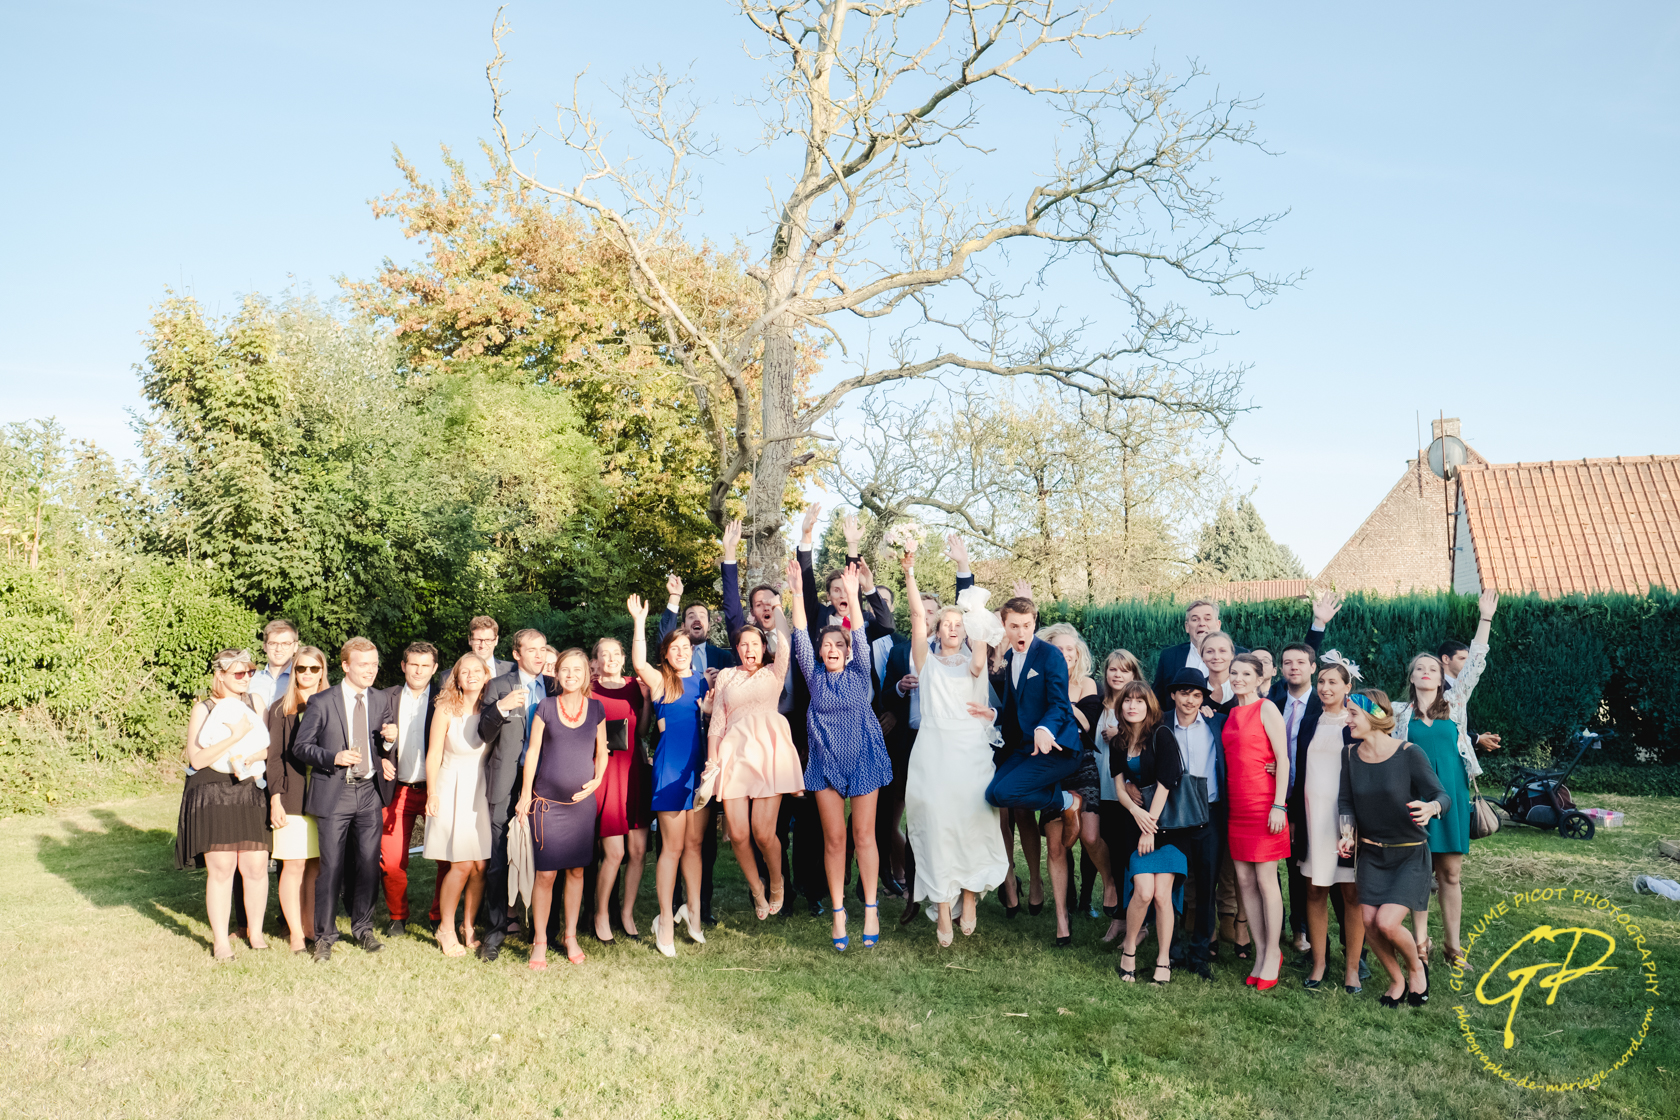 mariage-claire-fontaine-wicres-91-sur-151